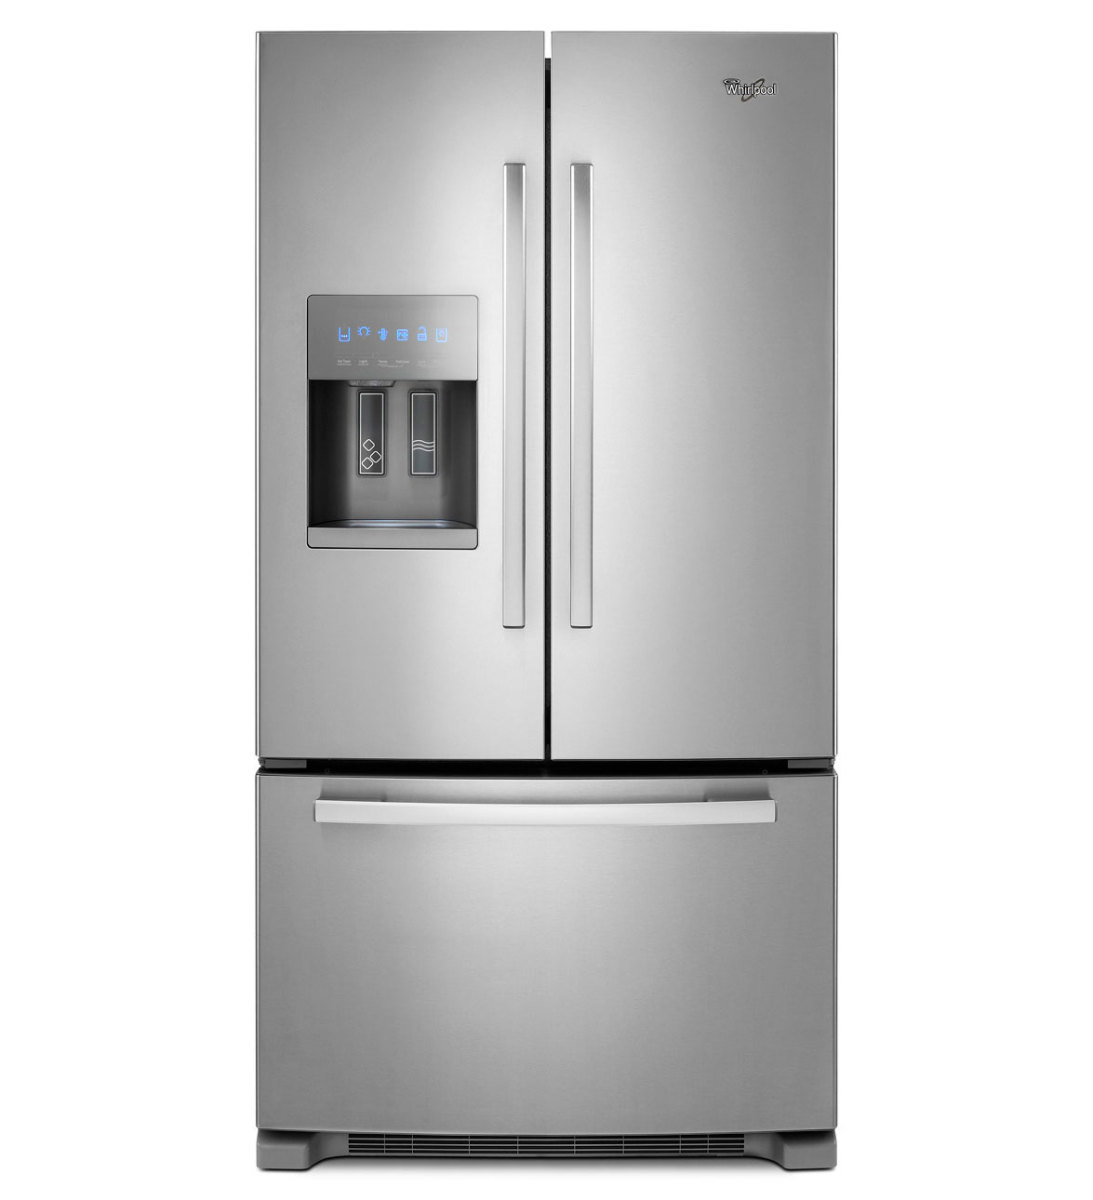 Most Common Reasons for Your Refrigerator to Malfunction